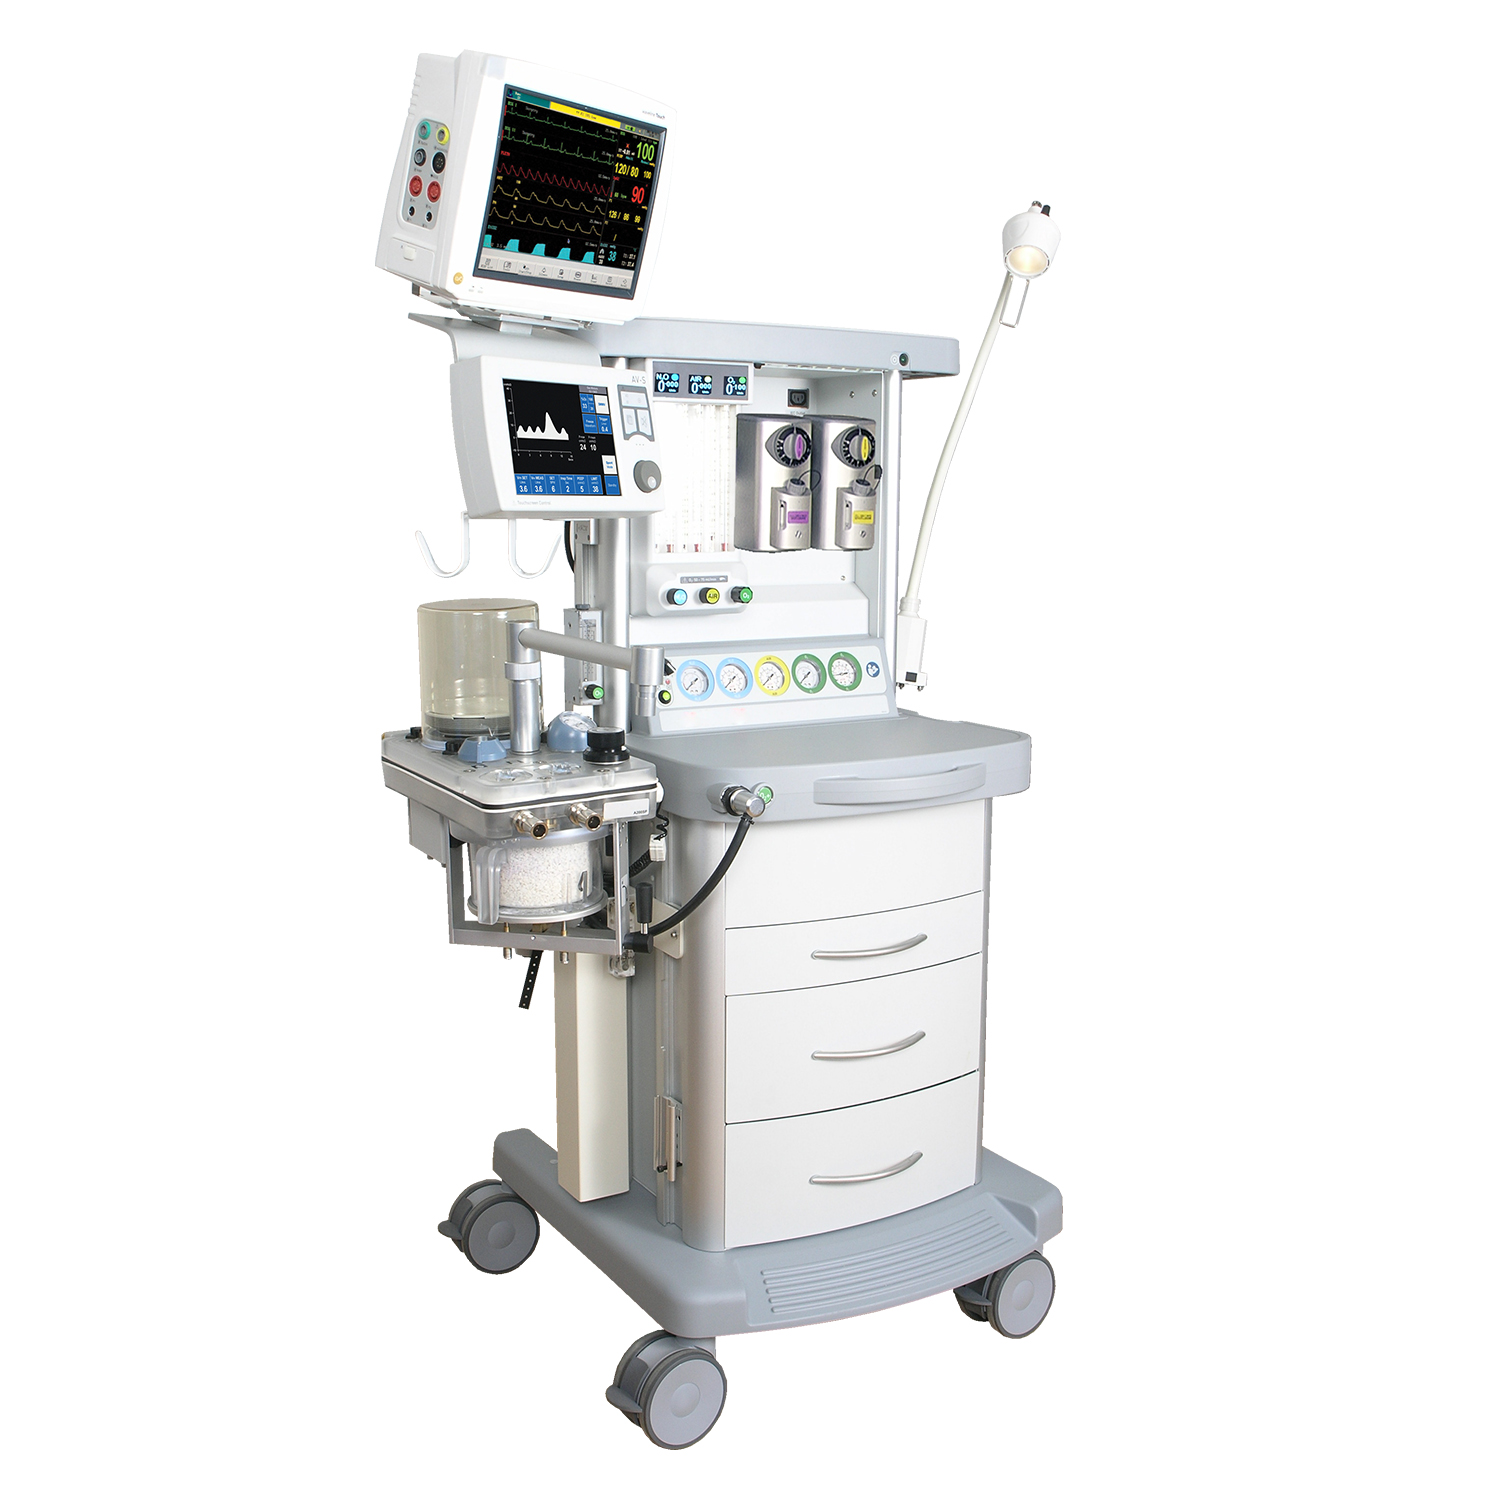 Avante Integra SL Anesthesia Machine